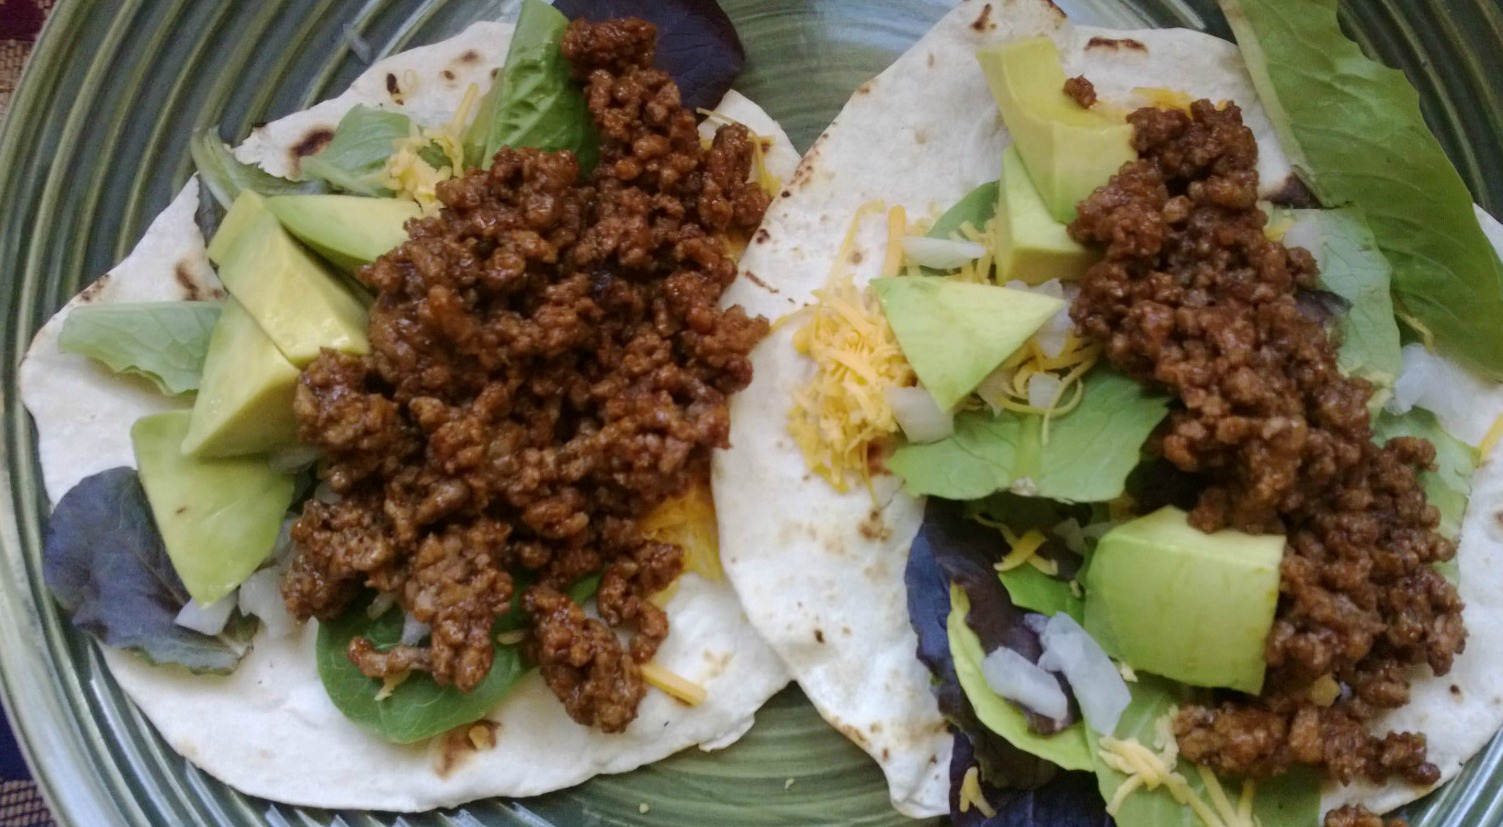 tacos with homemade tortillas